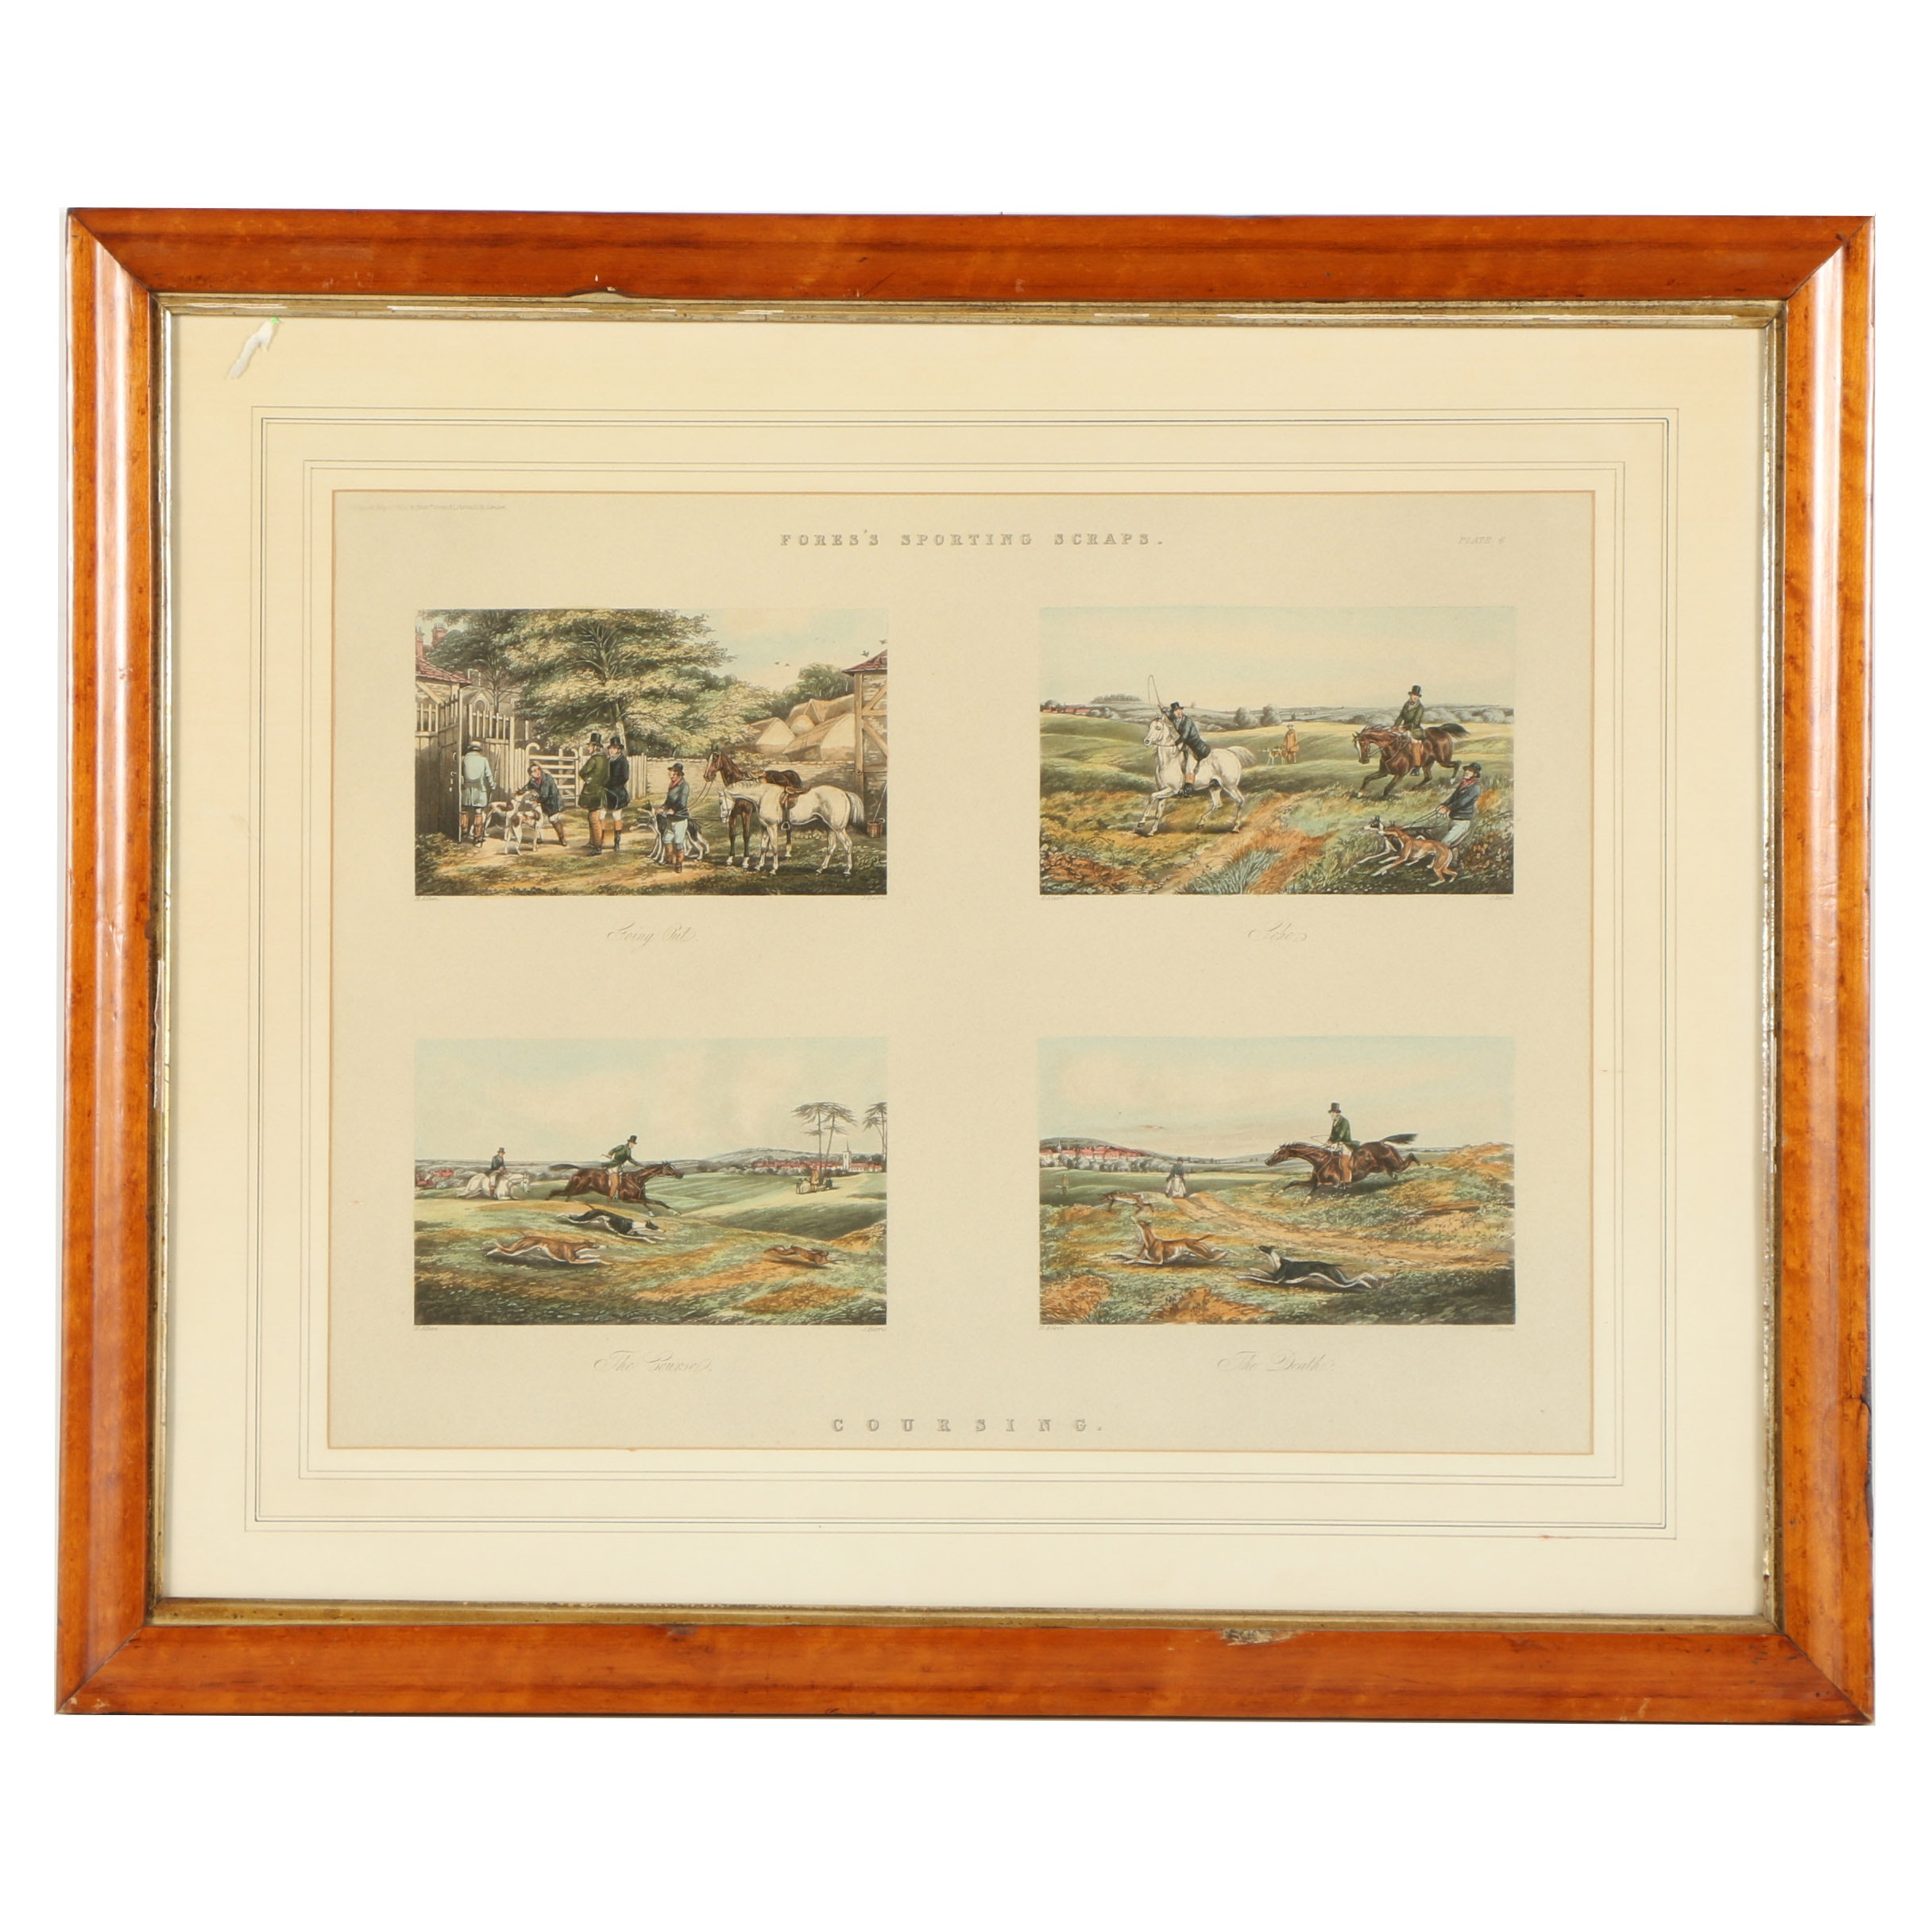 """Hand-Colored Metzograph After Henry Thomas Alken """"Coursing"""""""